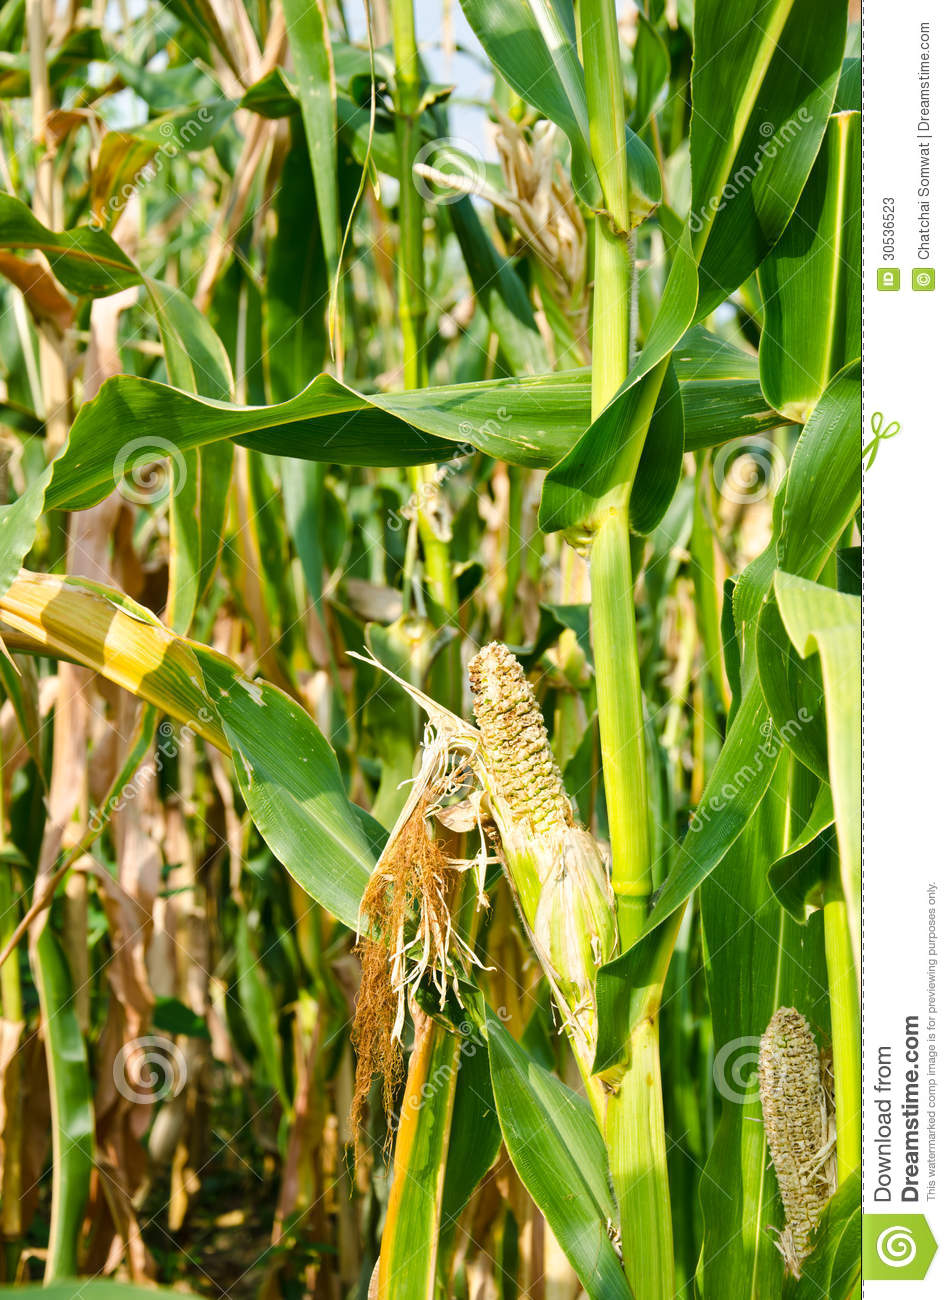 Damage Of Cornfield Stock Photos - Image: 30536523